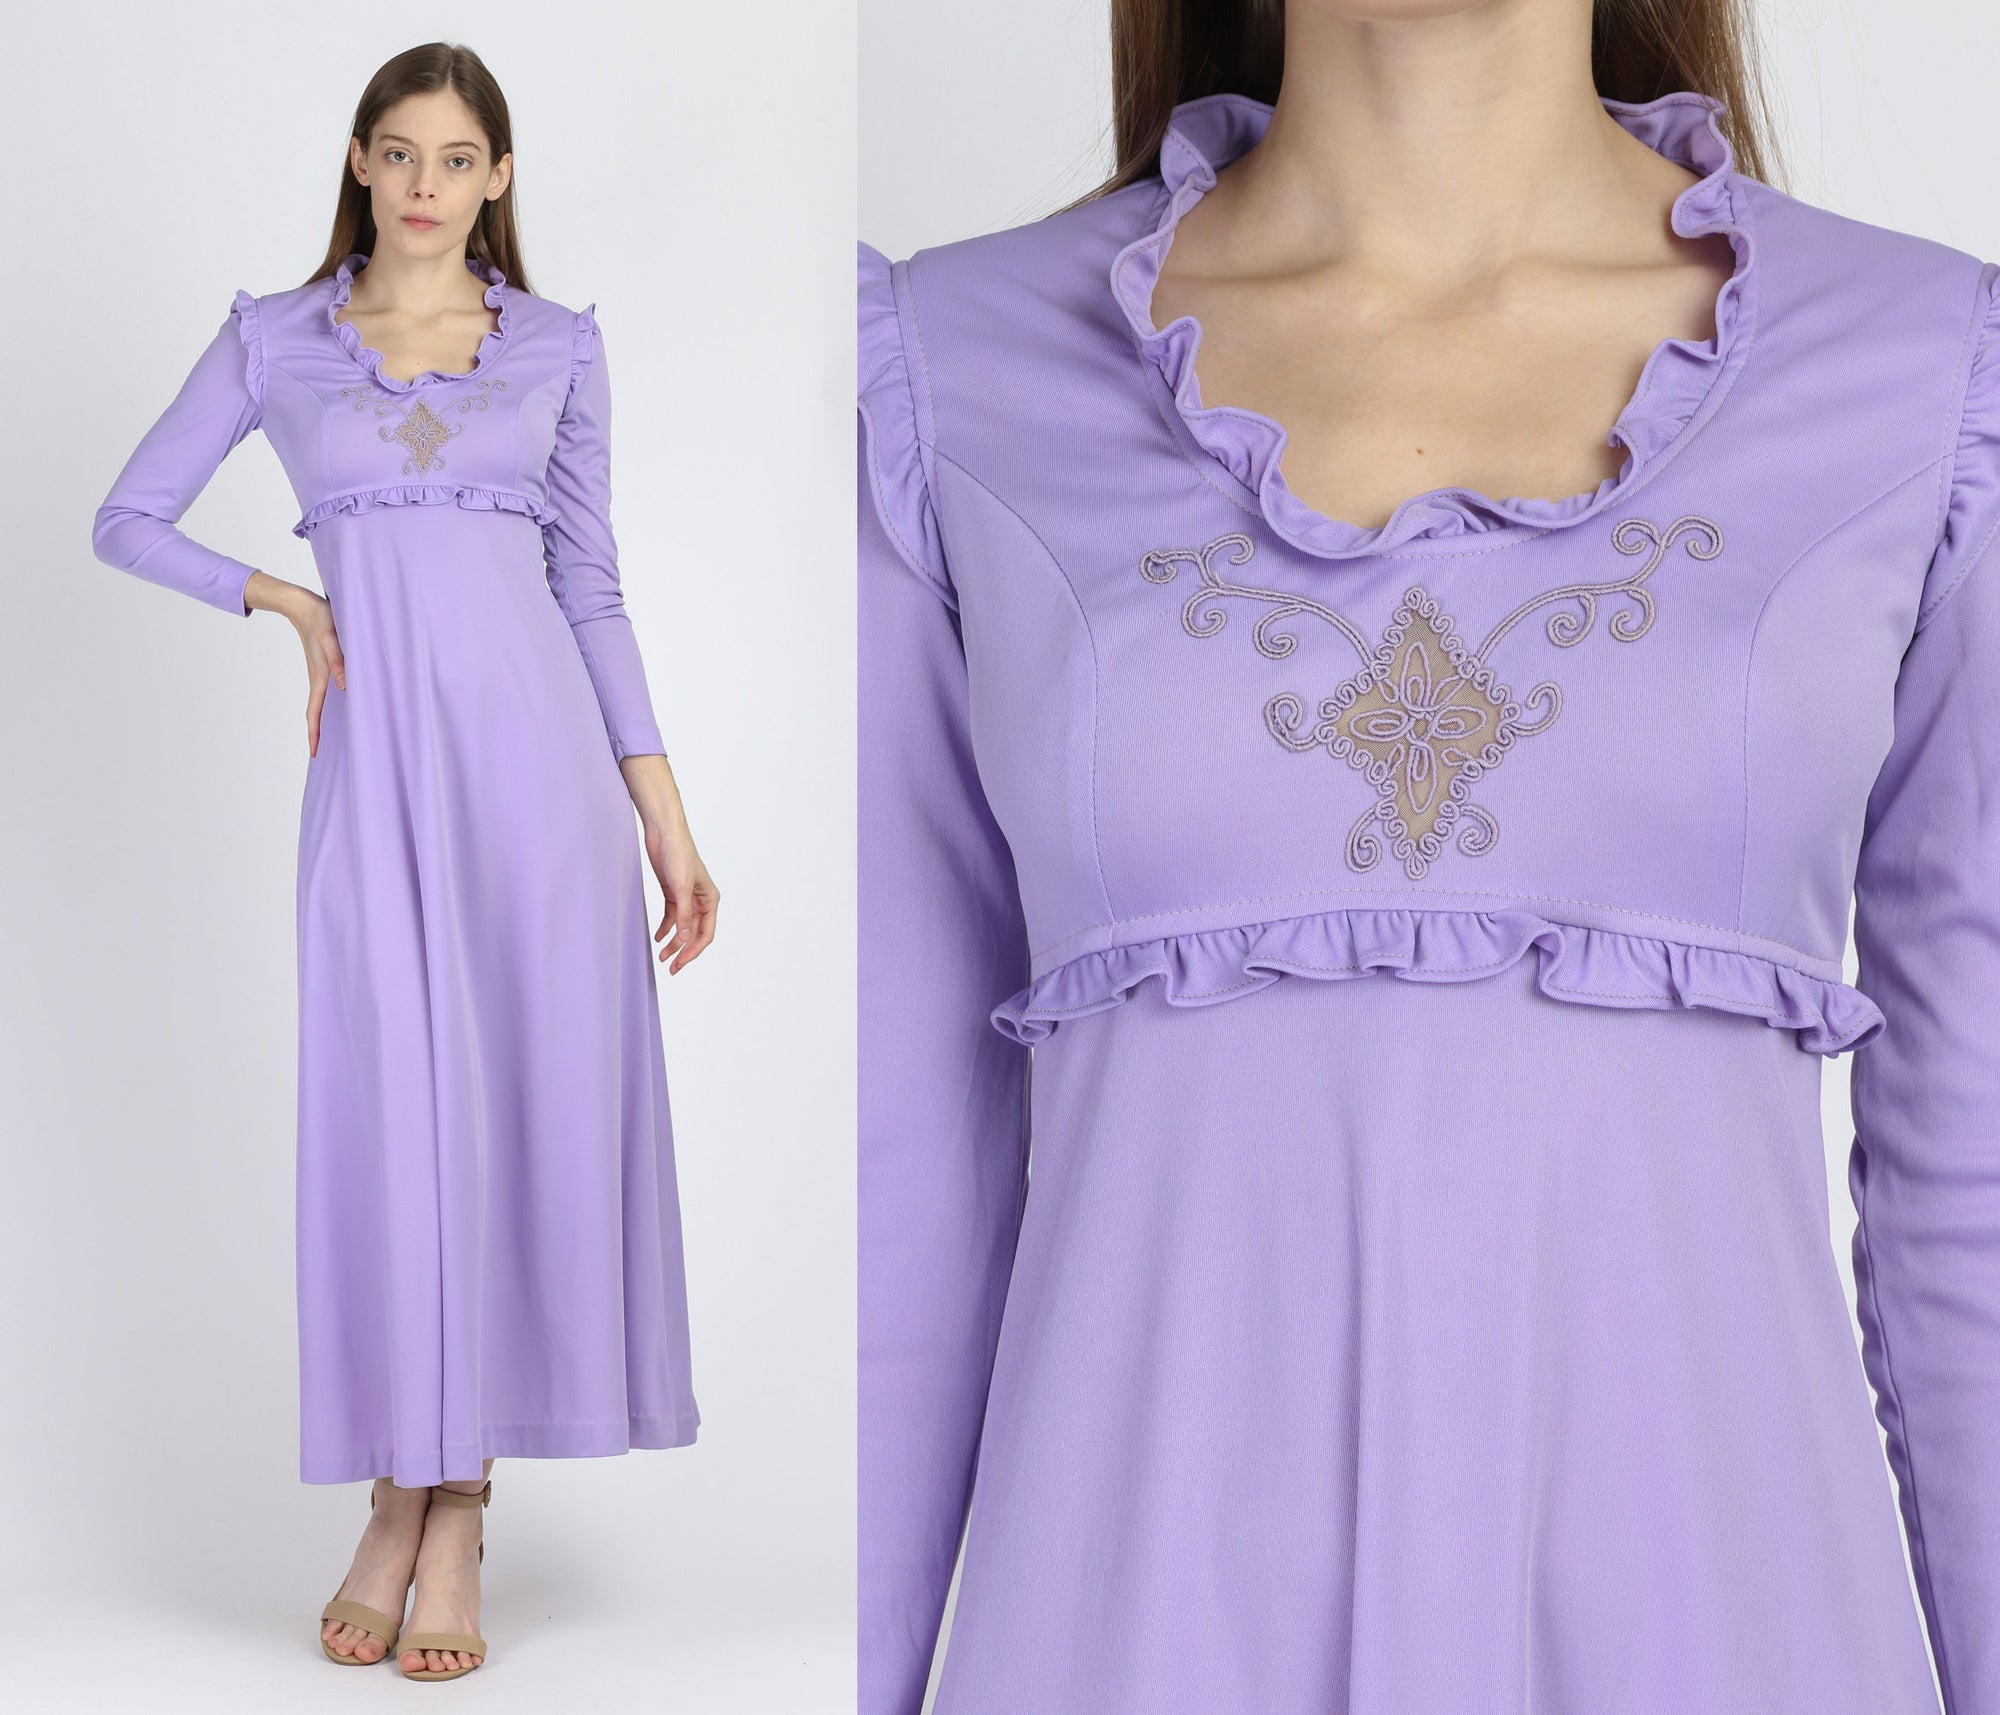 70s Boho Lilac Purple Maxi Dress - Extra Small